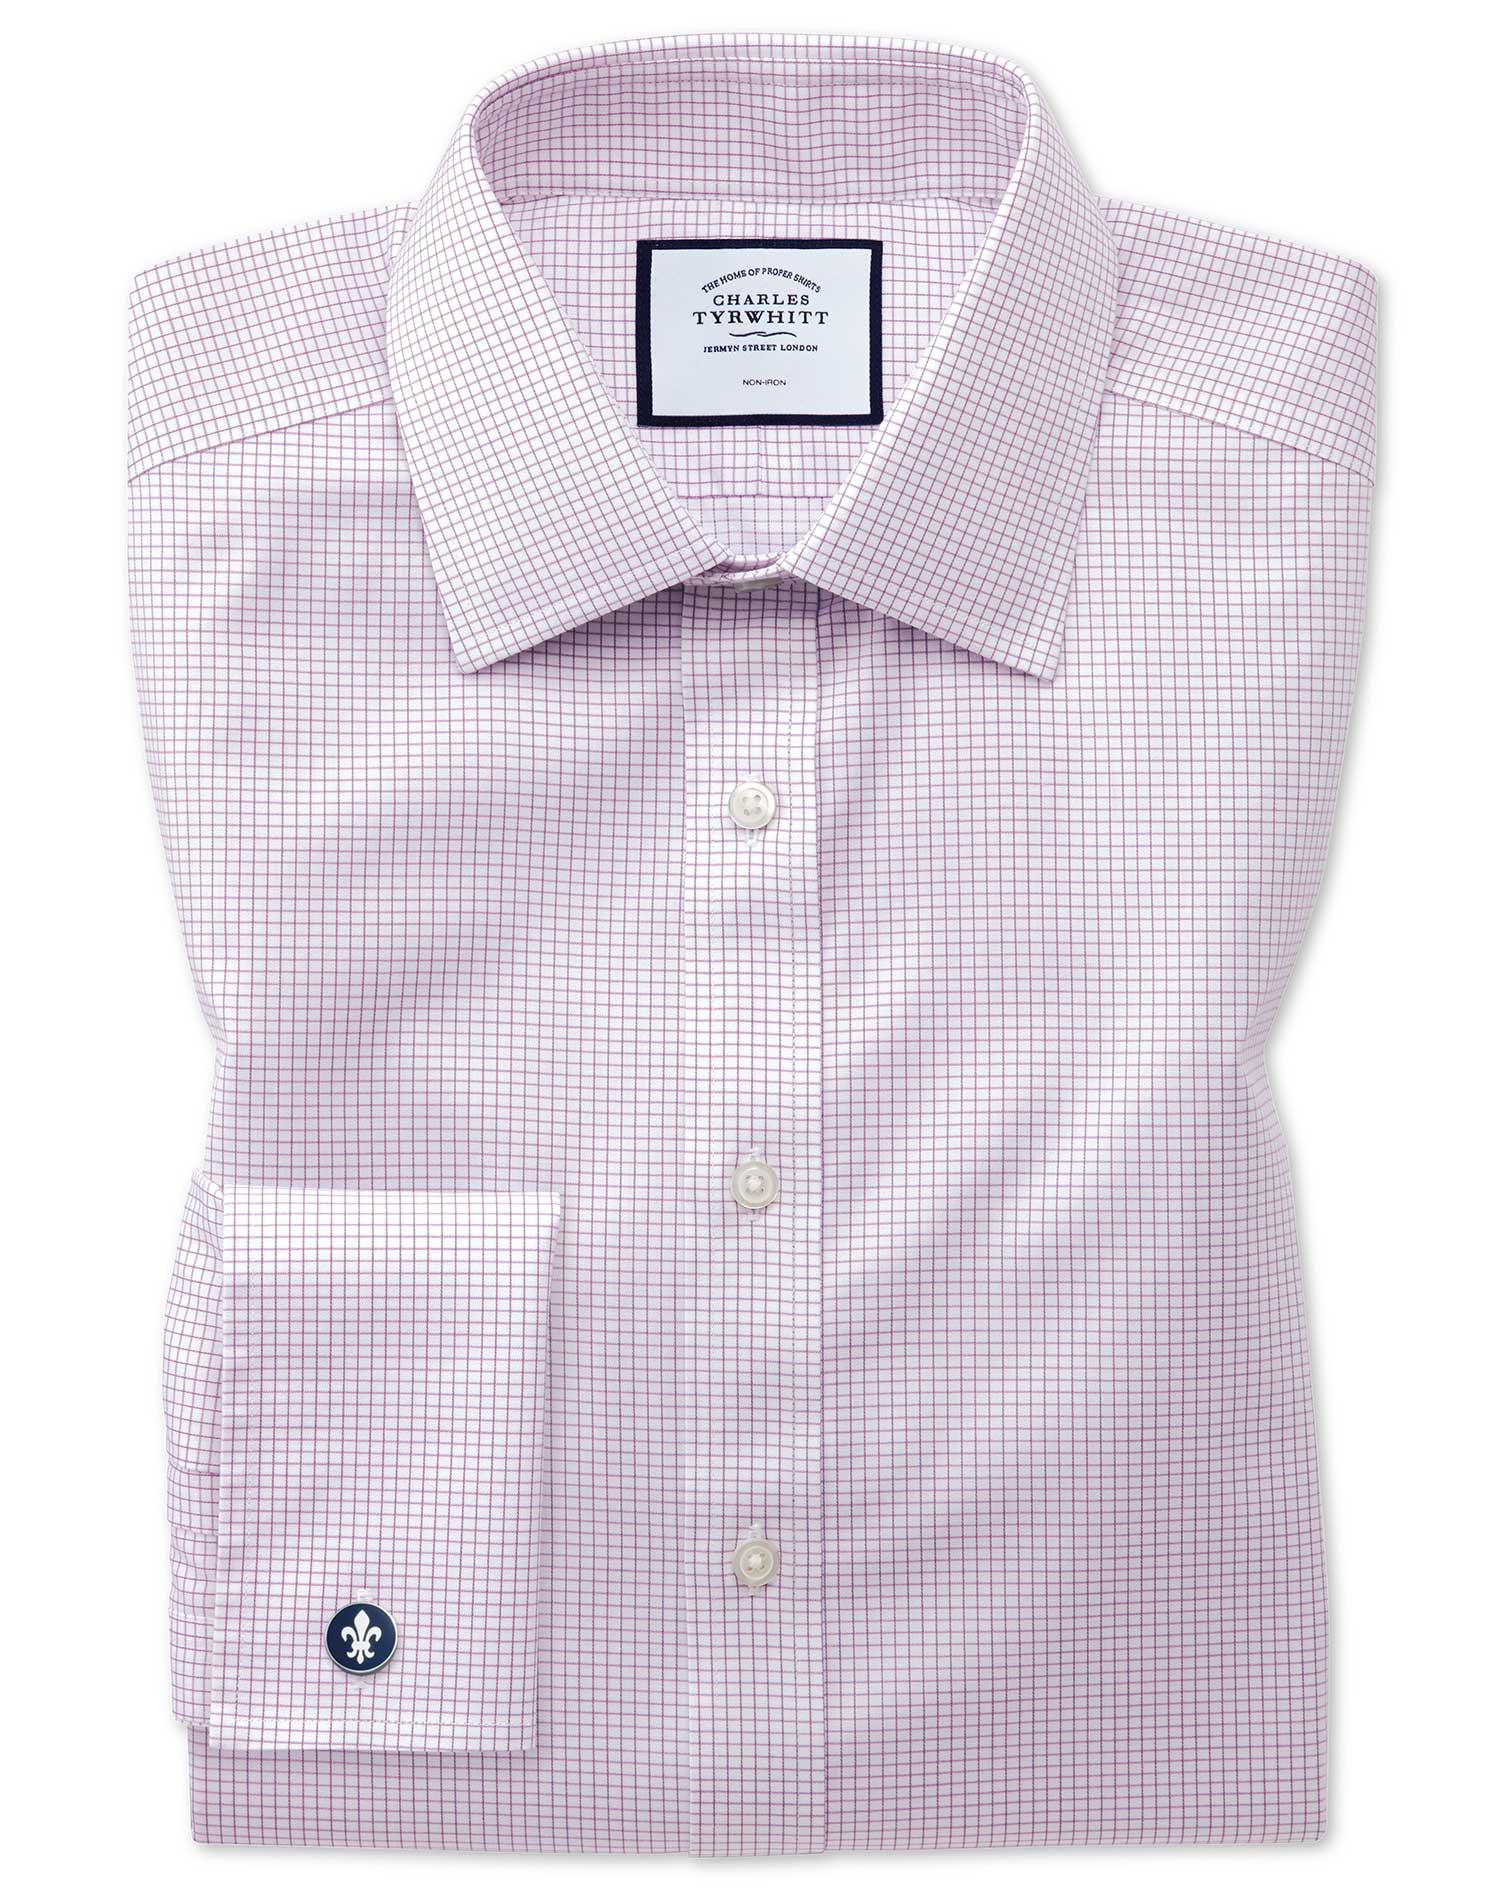 Slim Fit Non-Iron Twill Mini Grid Check Purple Cotton Formal Shirt Double Cuff Size 15/34 by Charles